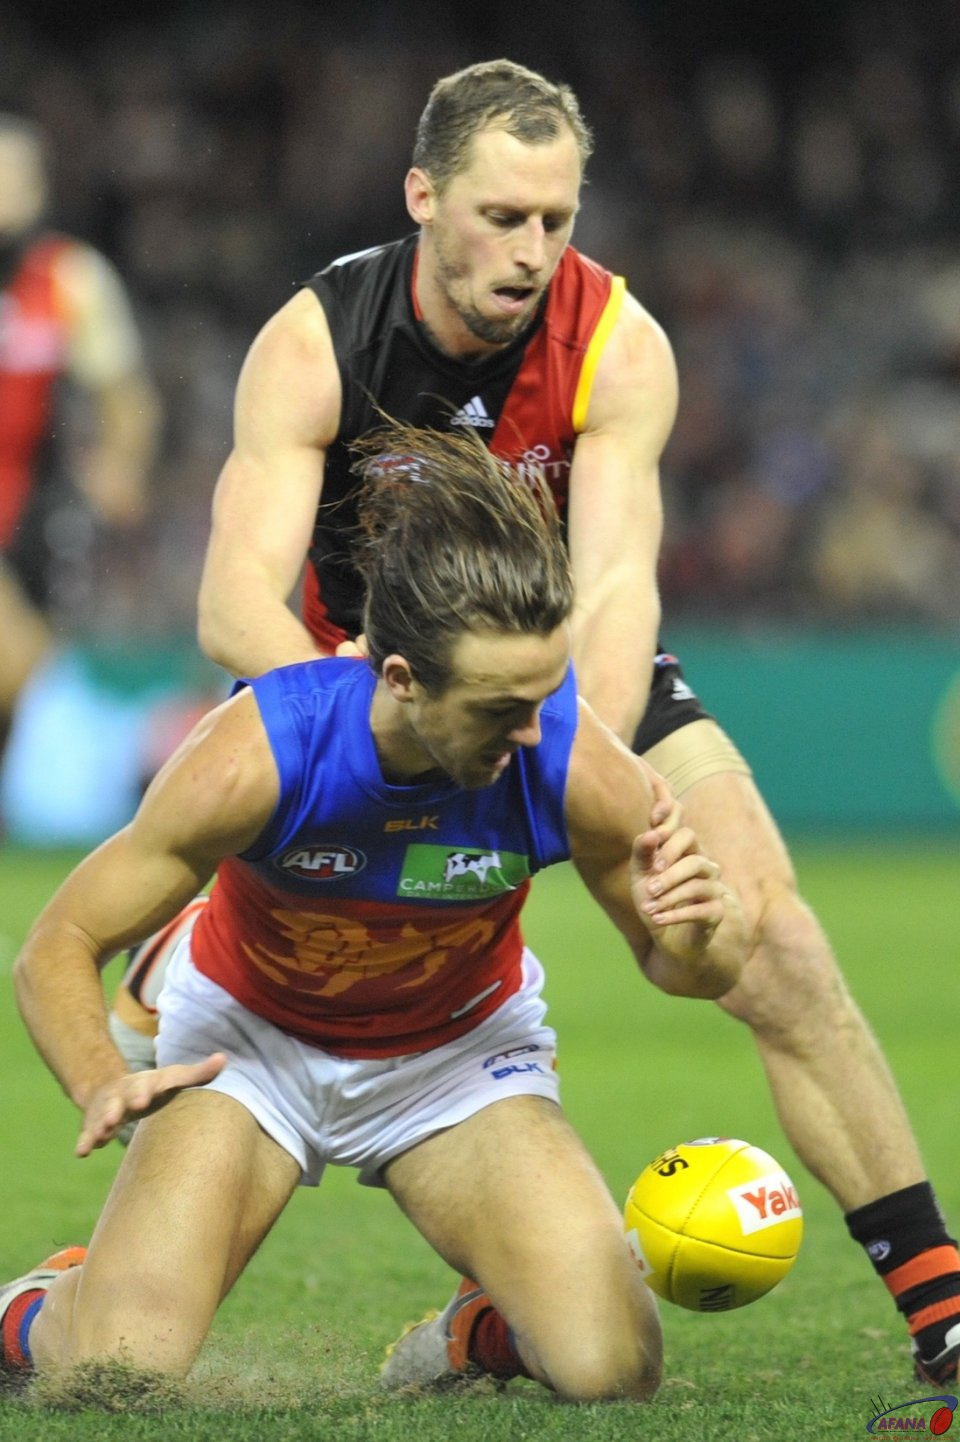 James Kelly spoils Rhys Mathieson attack on the ball